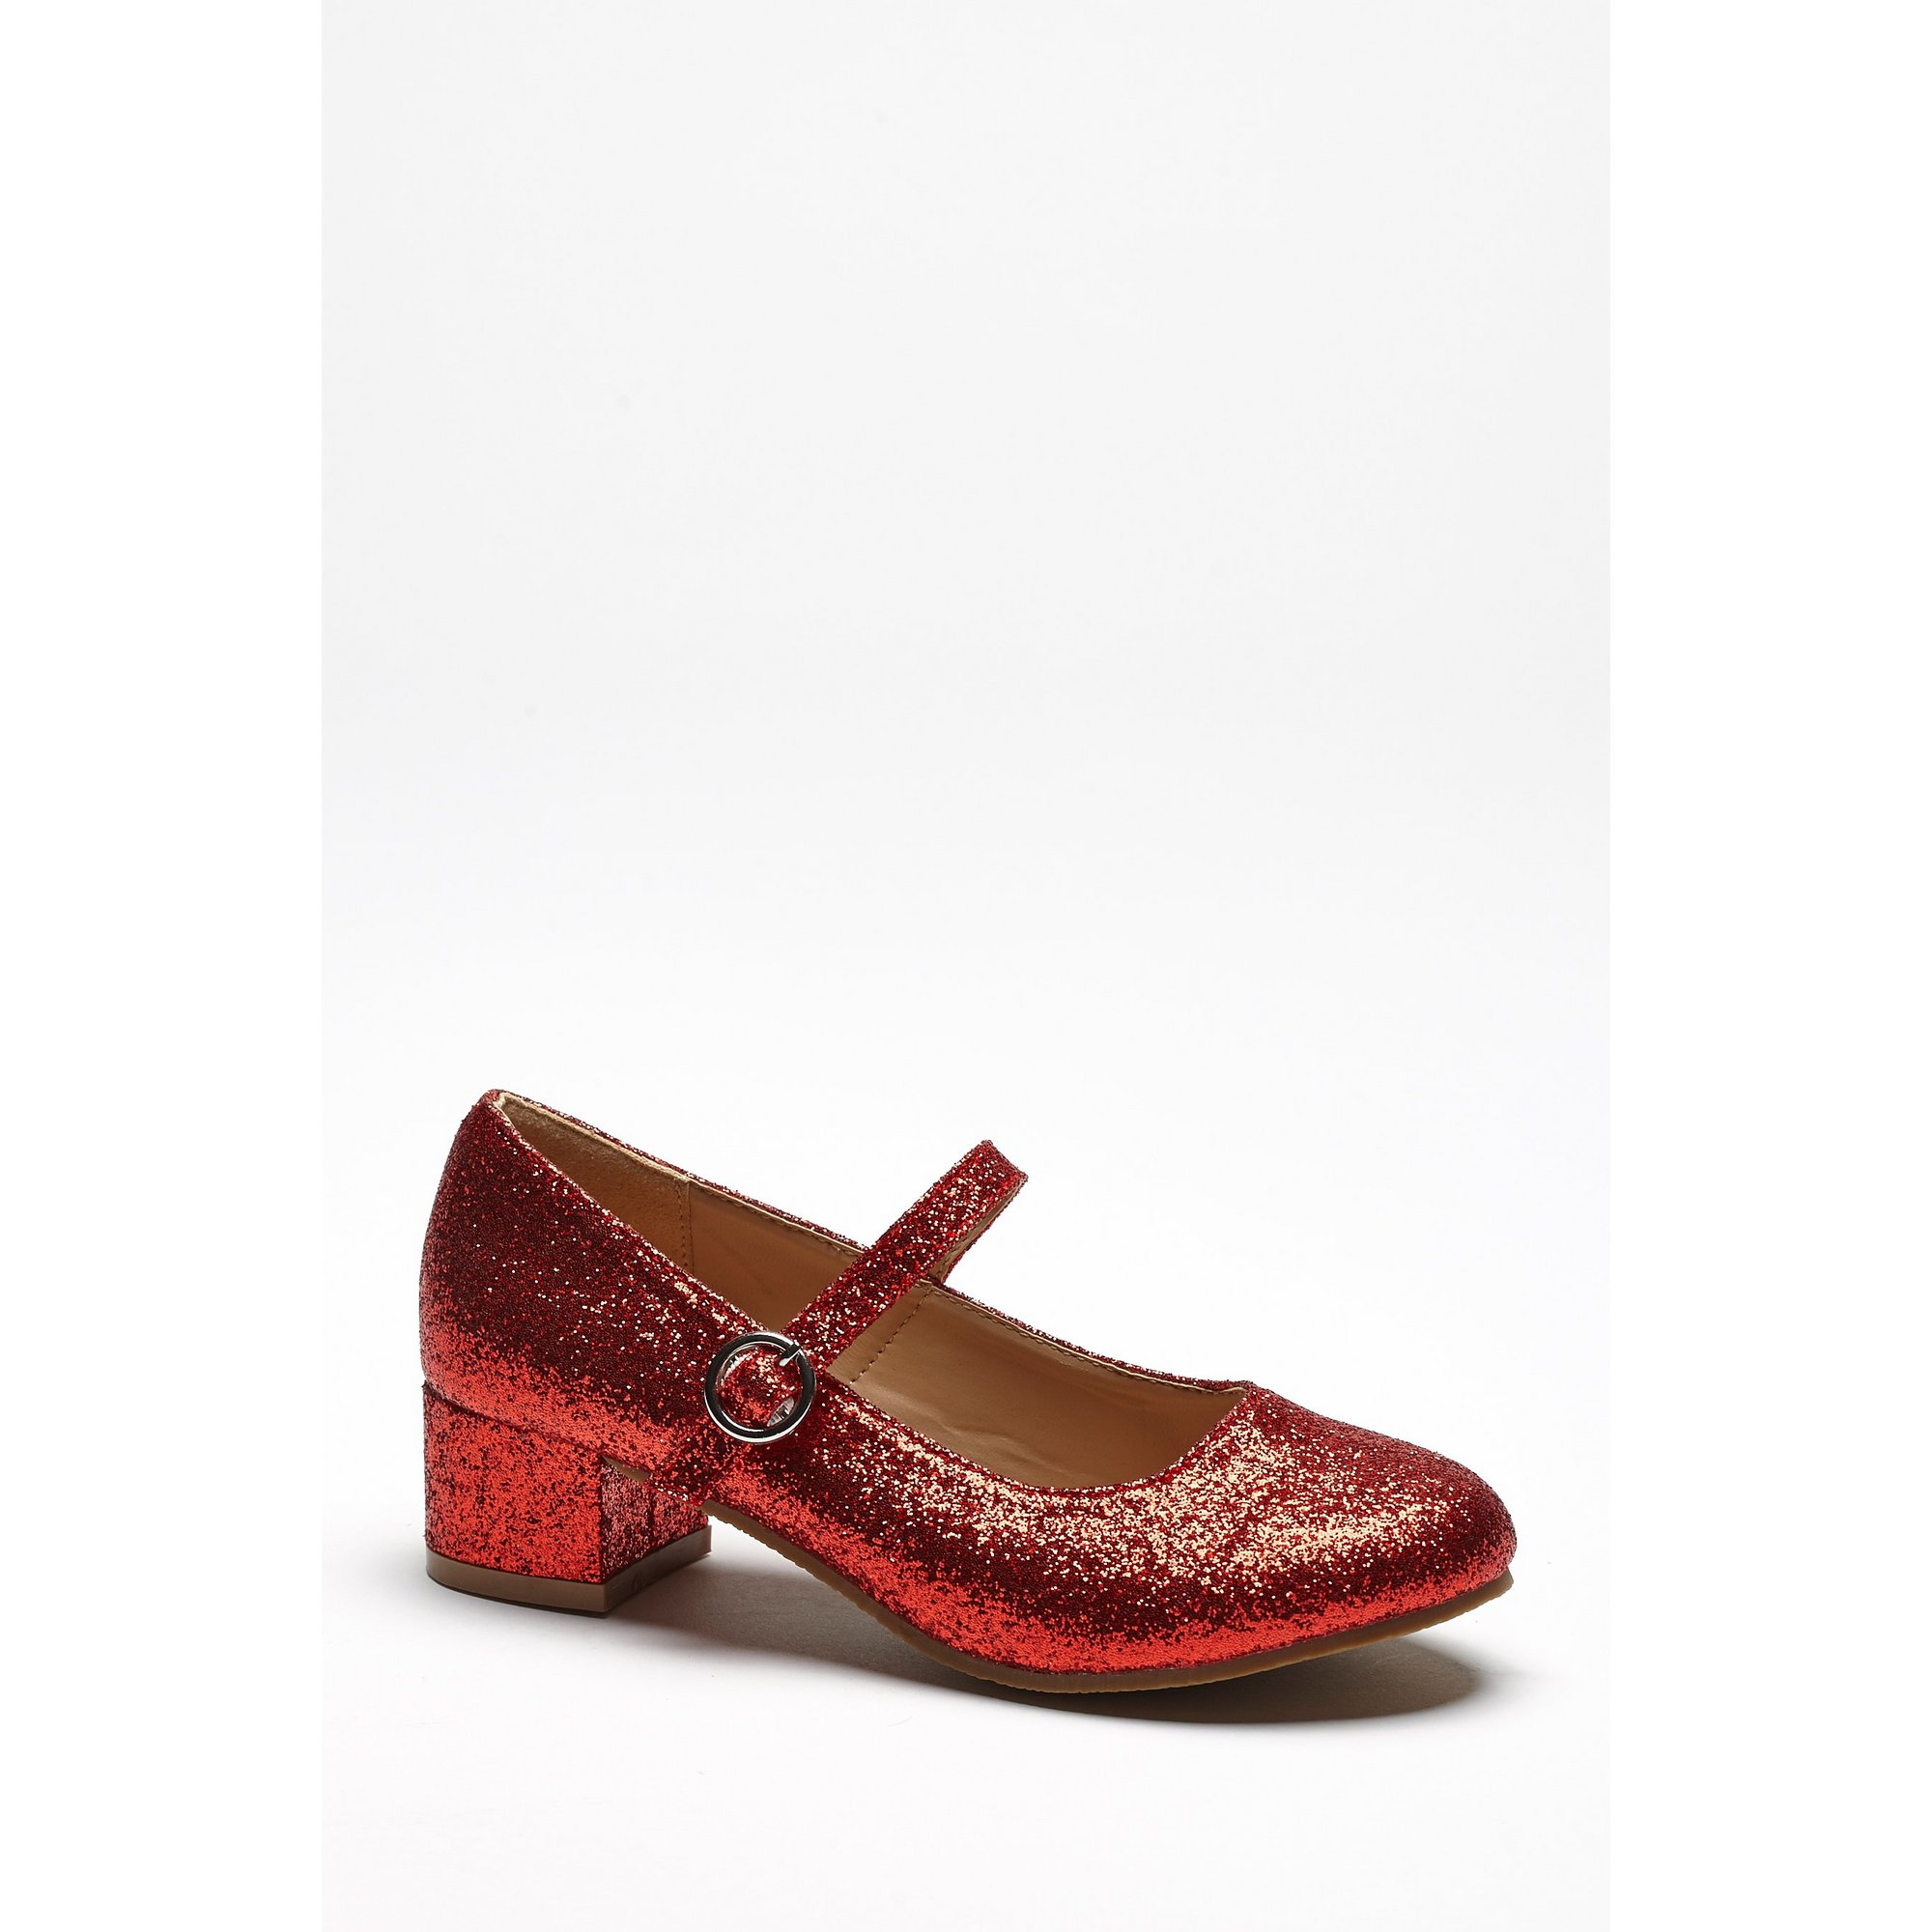 Image of Girls Low Heel Mary Jane Shoes